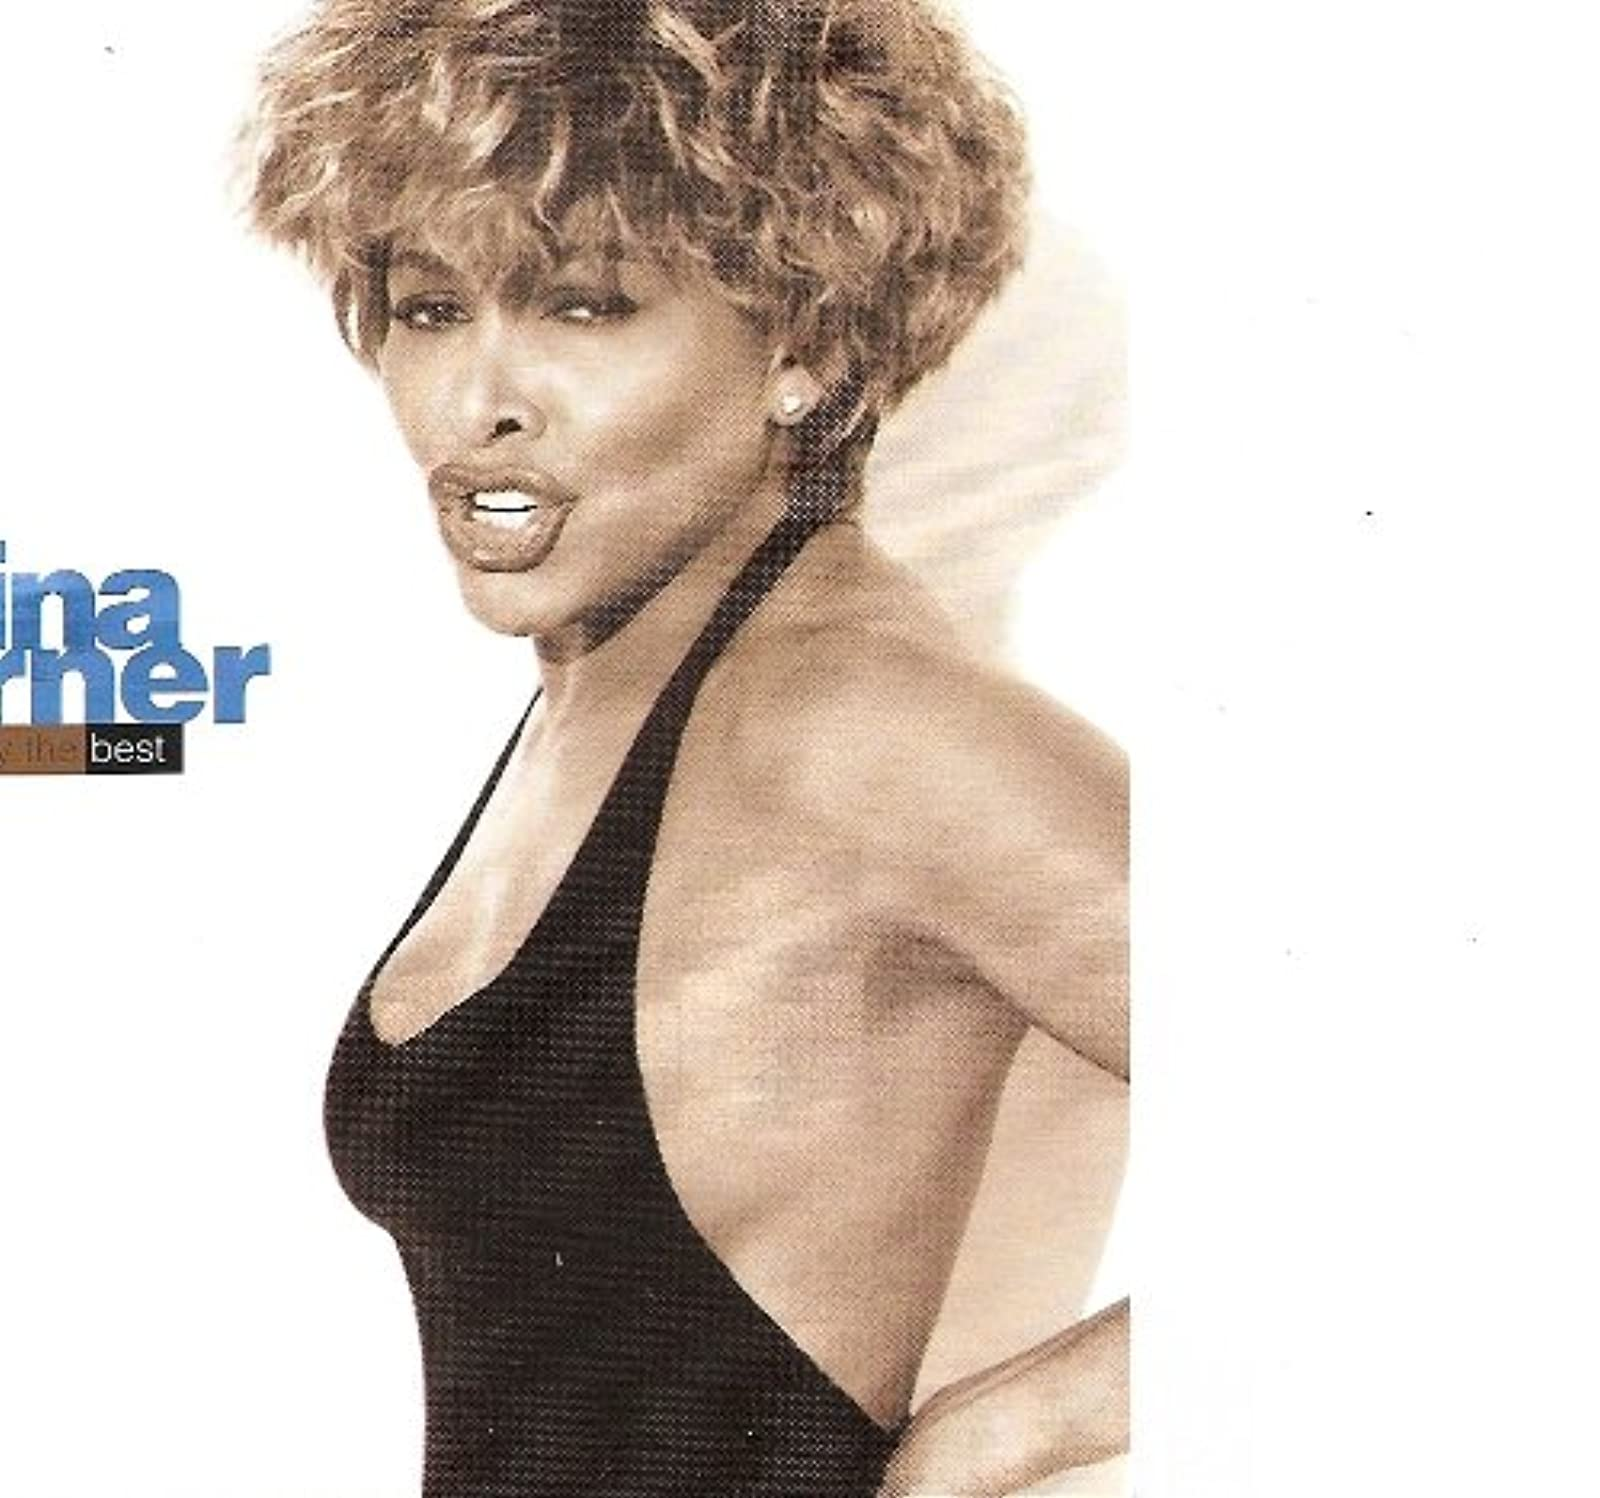 Simply The Best By Tina Turner On Audio CD Album